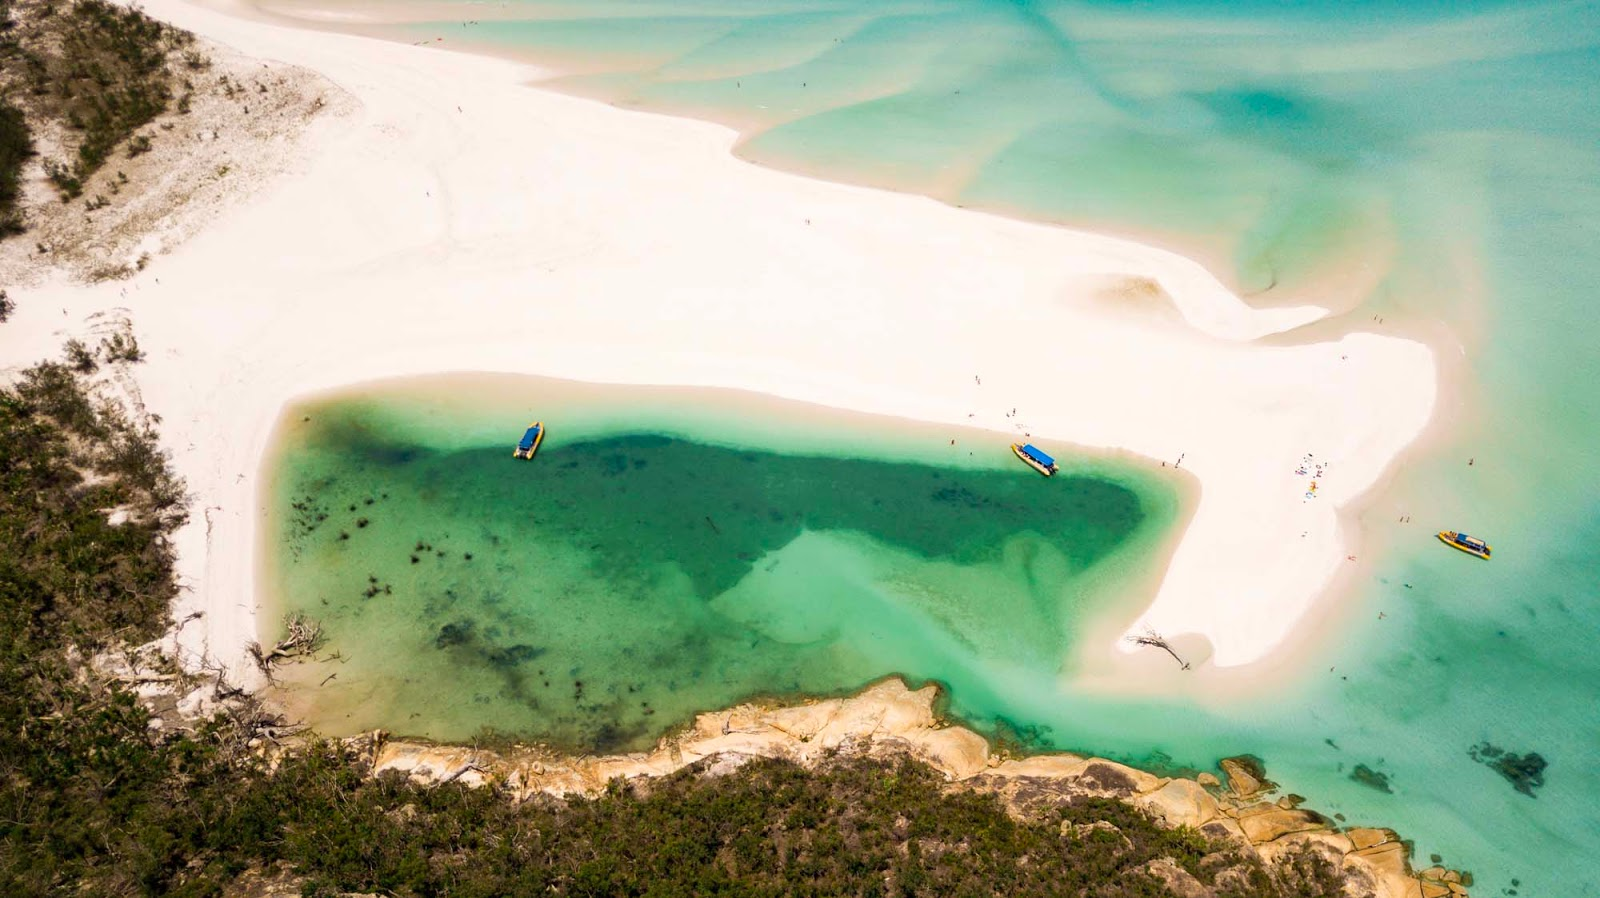 bettys beach from above